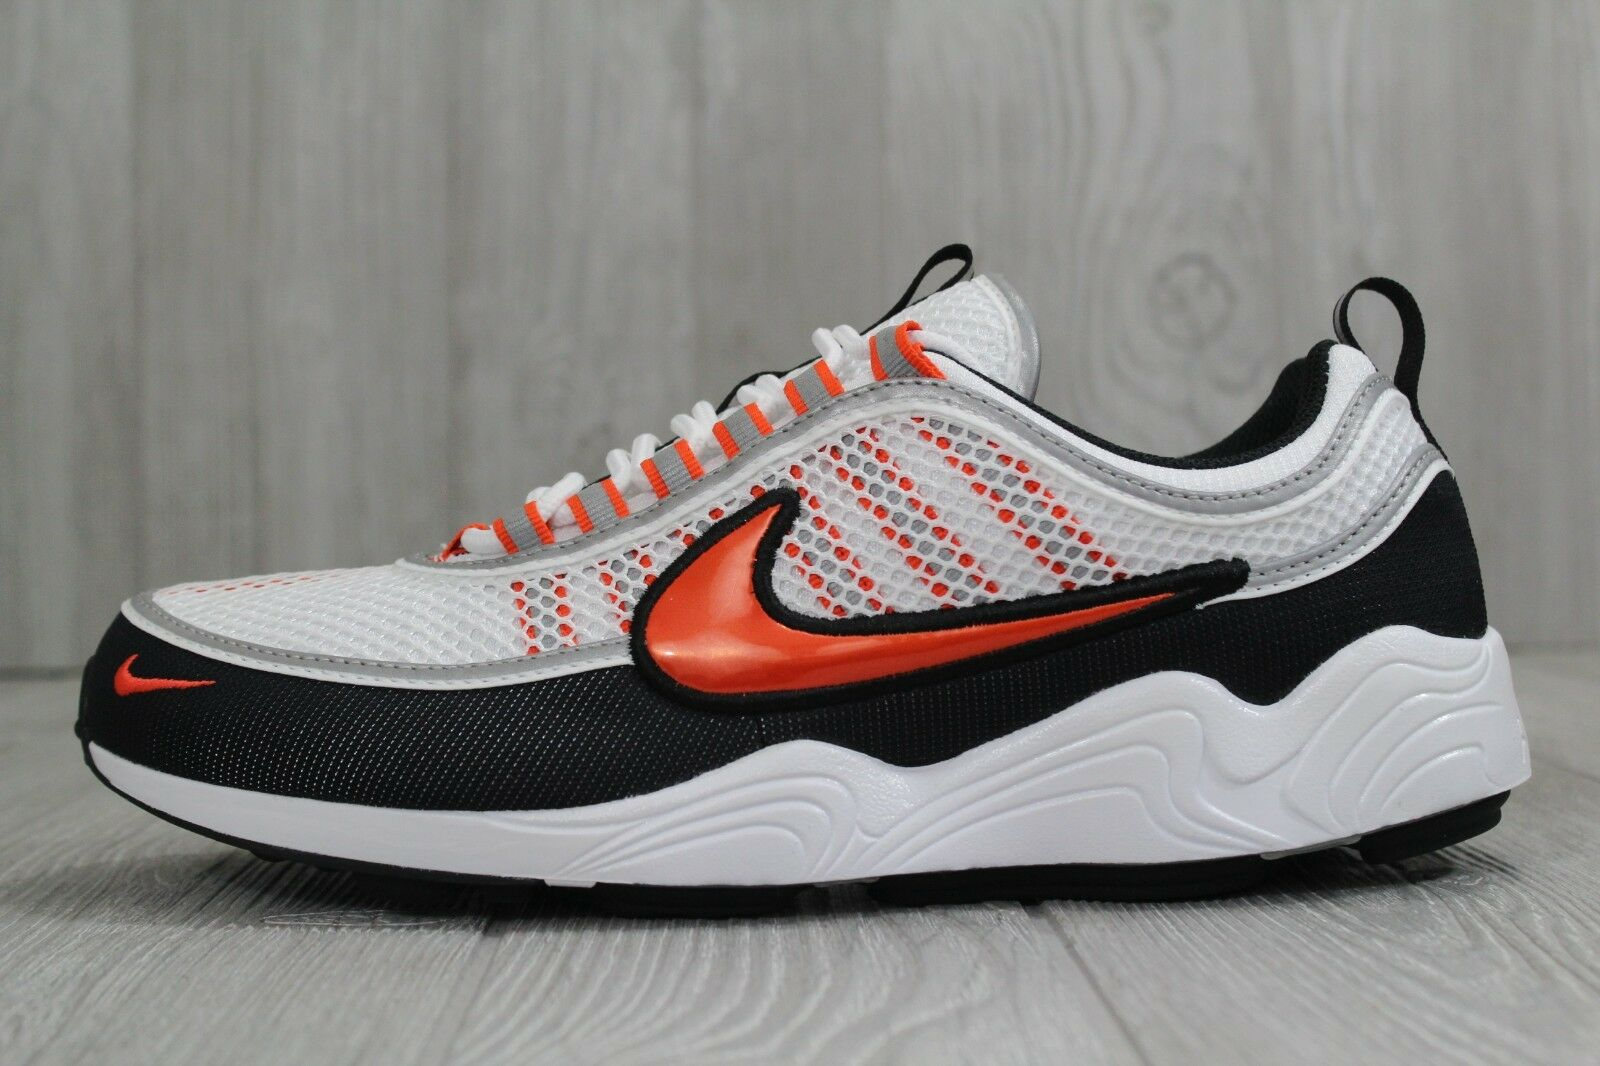 32 Nike Zoom Spiridon '16 Mens Running Shoes Orange Sizes 9-13 926955 106